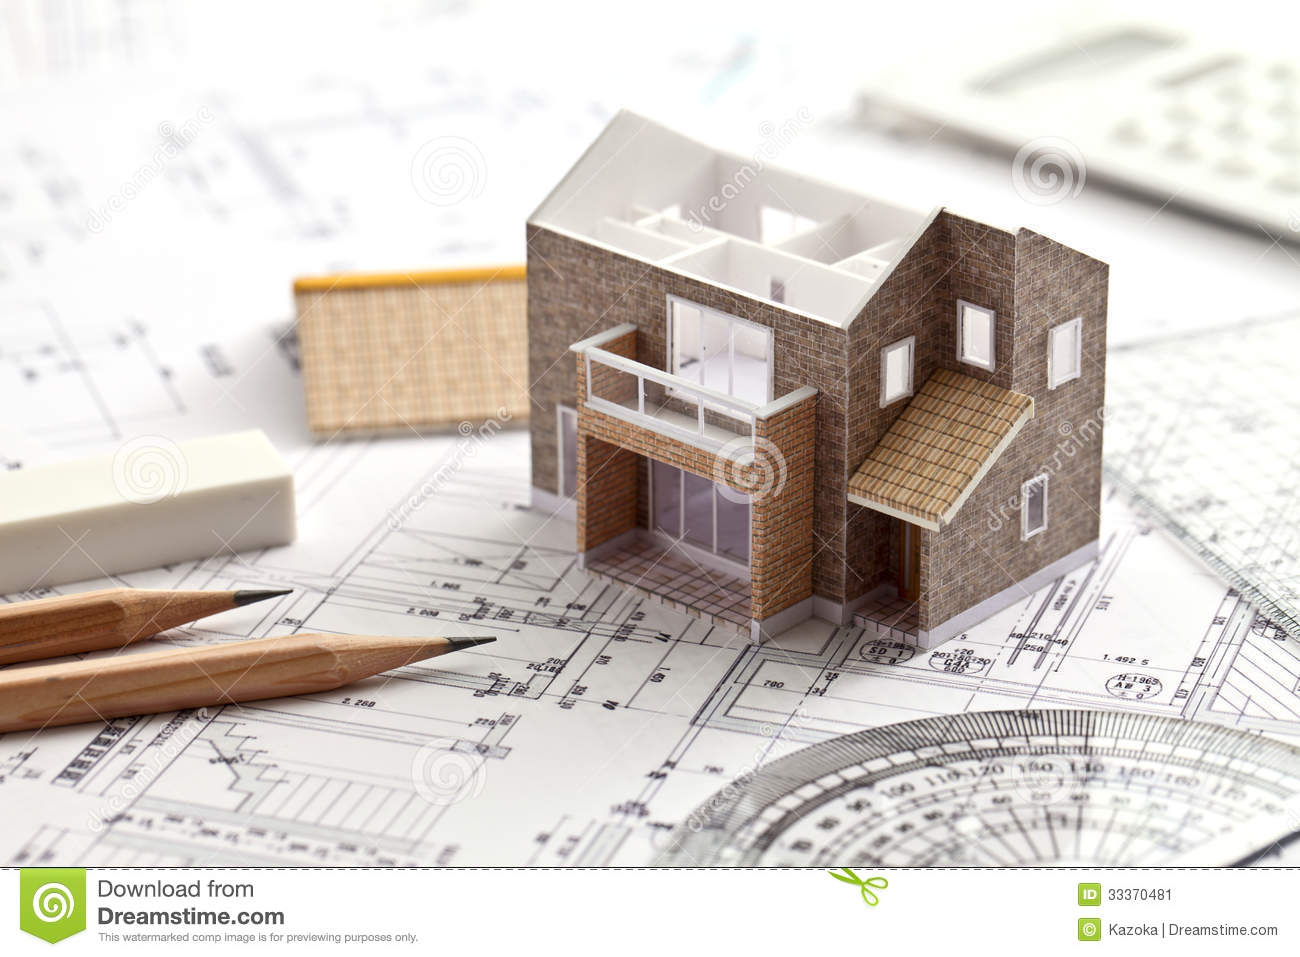 House design drawing stock image image of object paper for Build a home online free